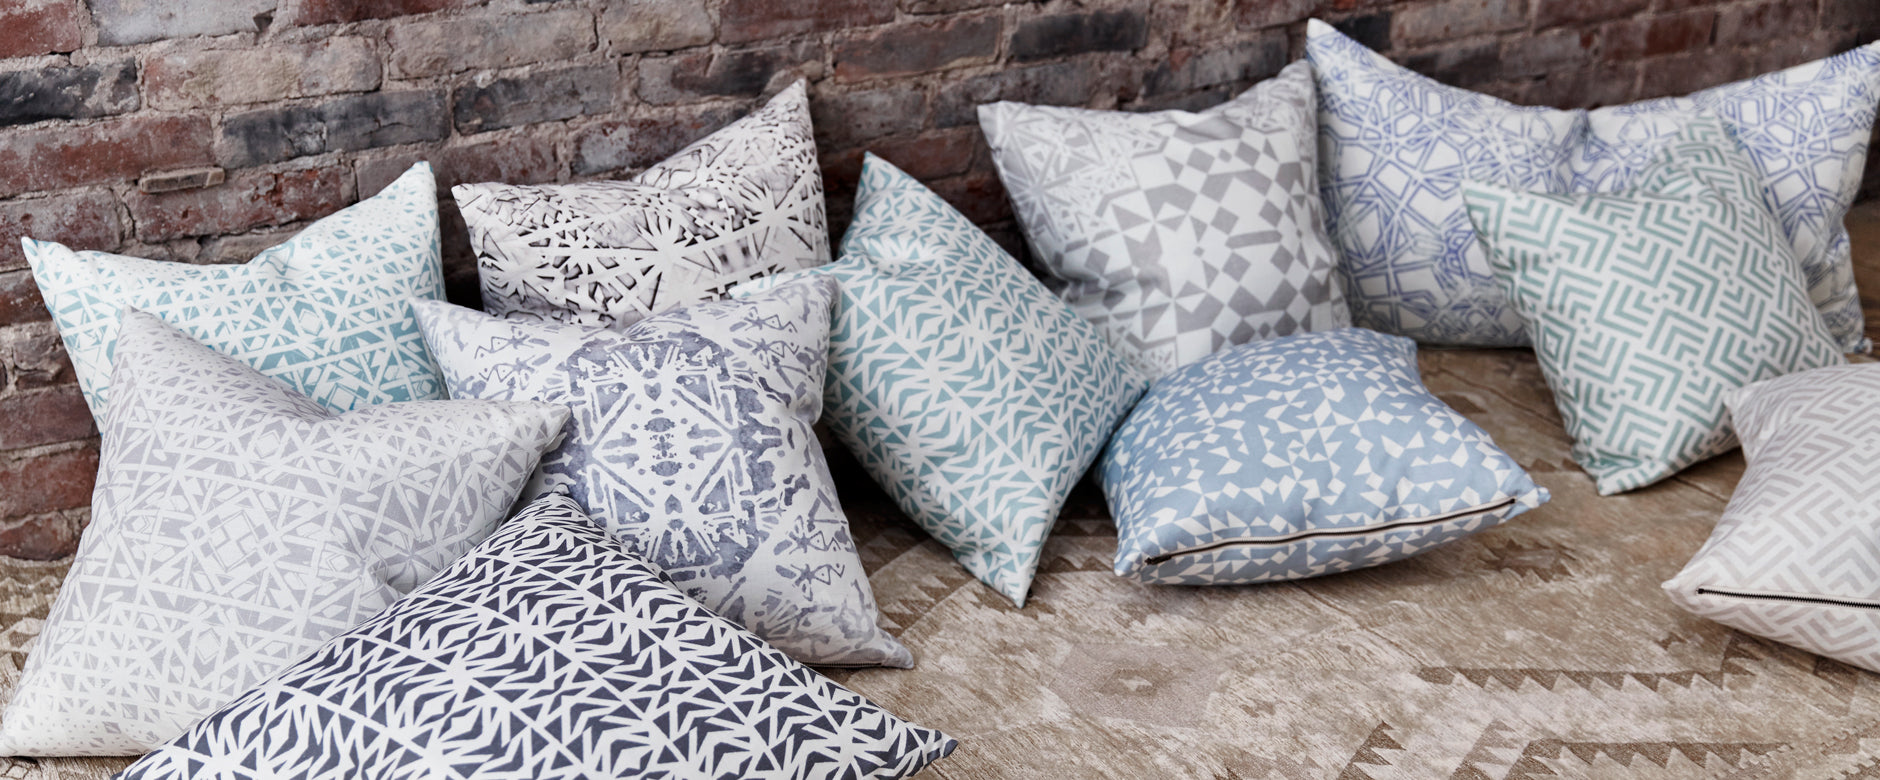 Savannah Hayes Pillow Collection